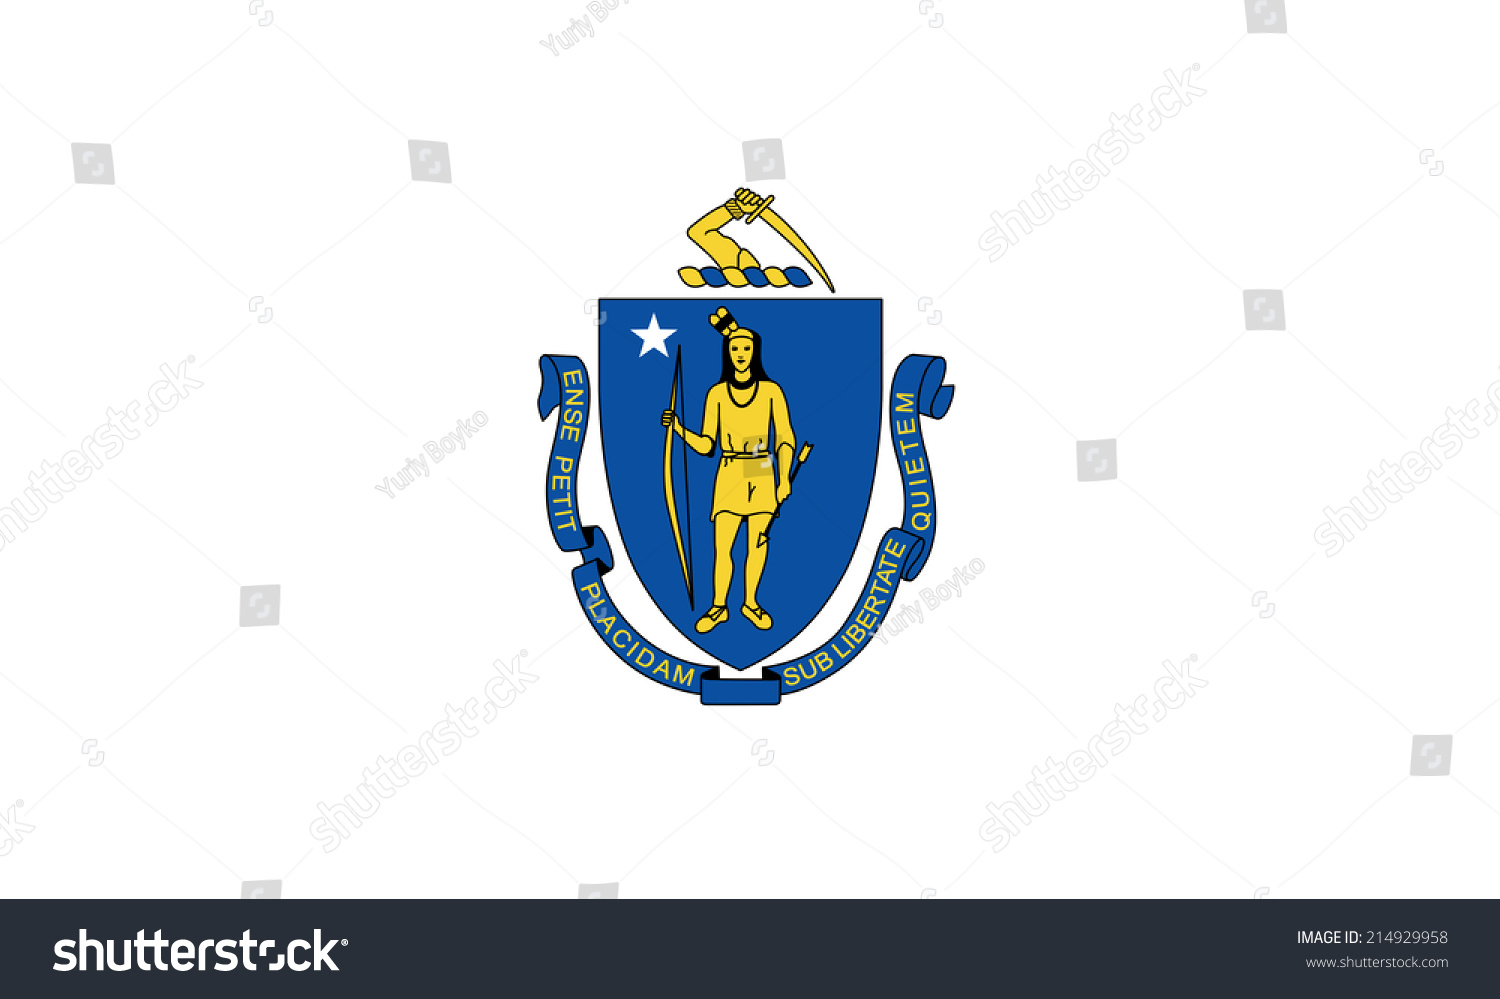 Illustrated drawing flag massachusetts state usa stock an illustrated drawing of the flag of massachusetts state usa buycottarizona